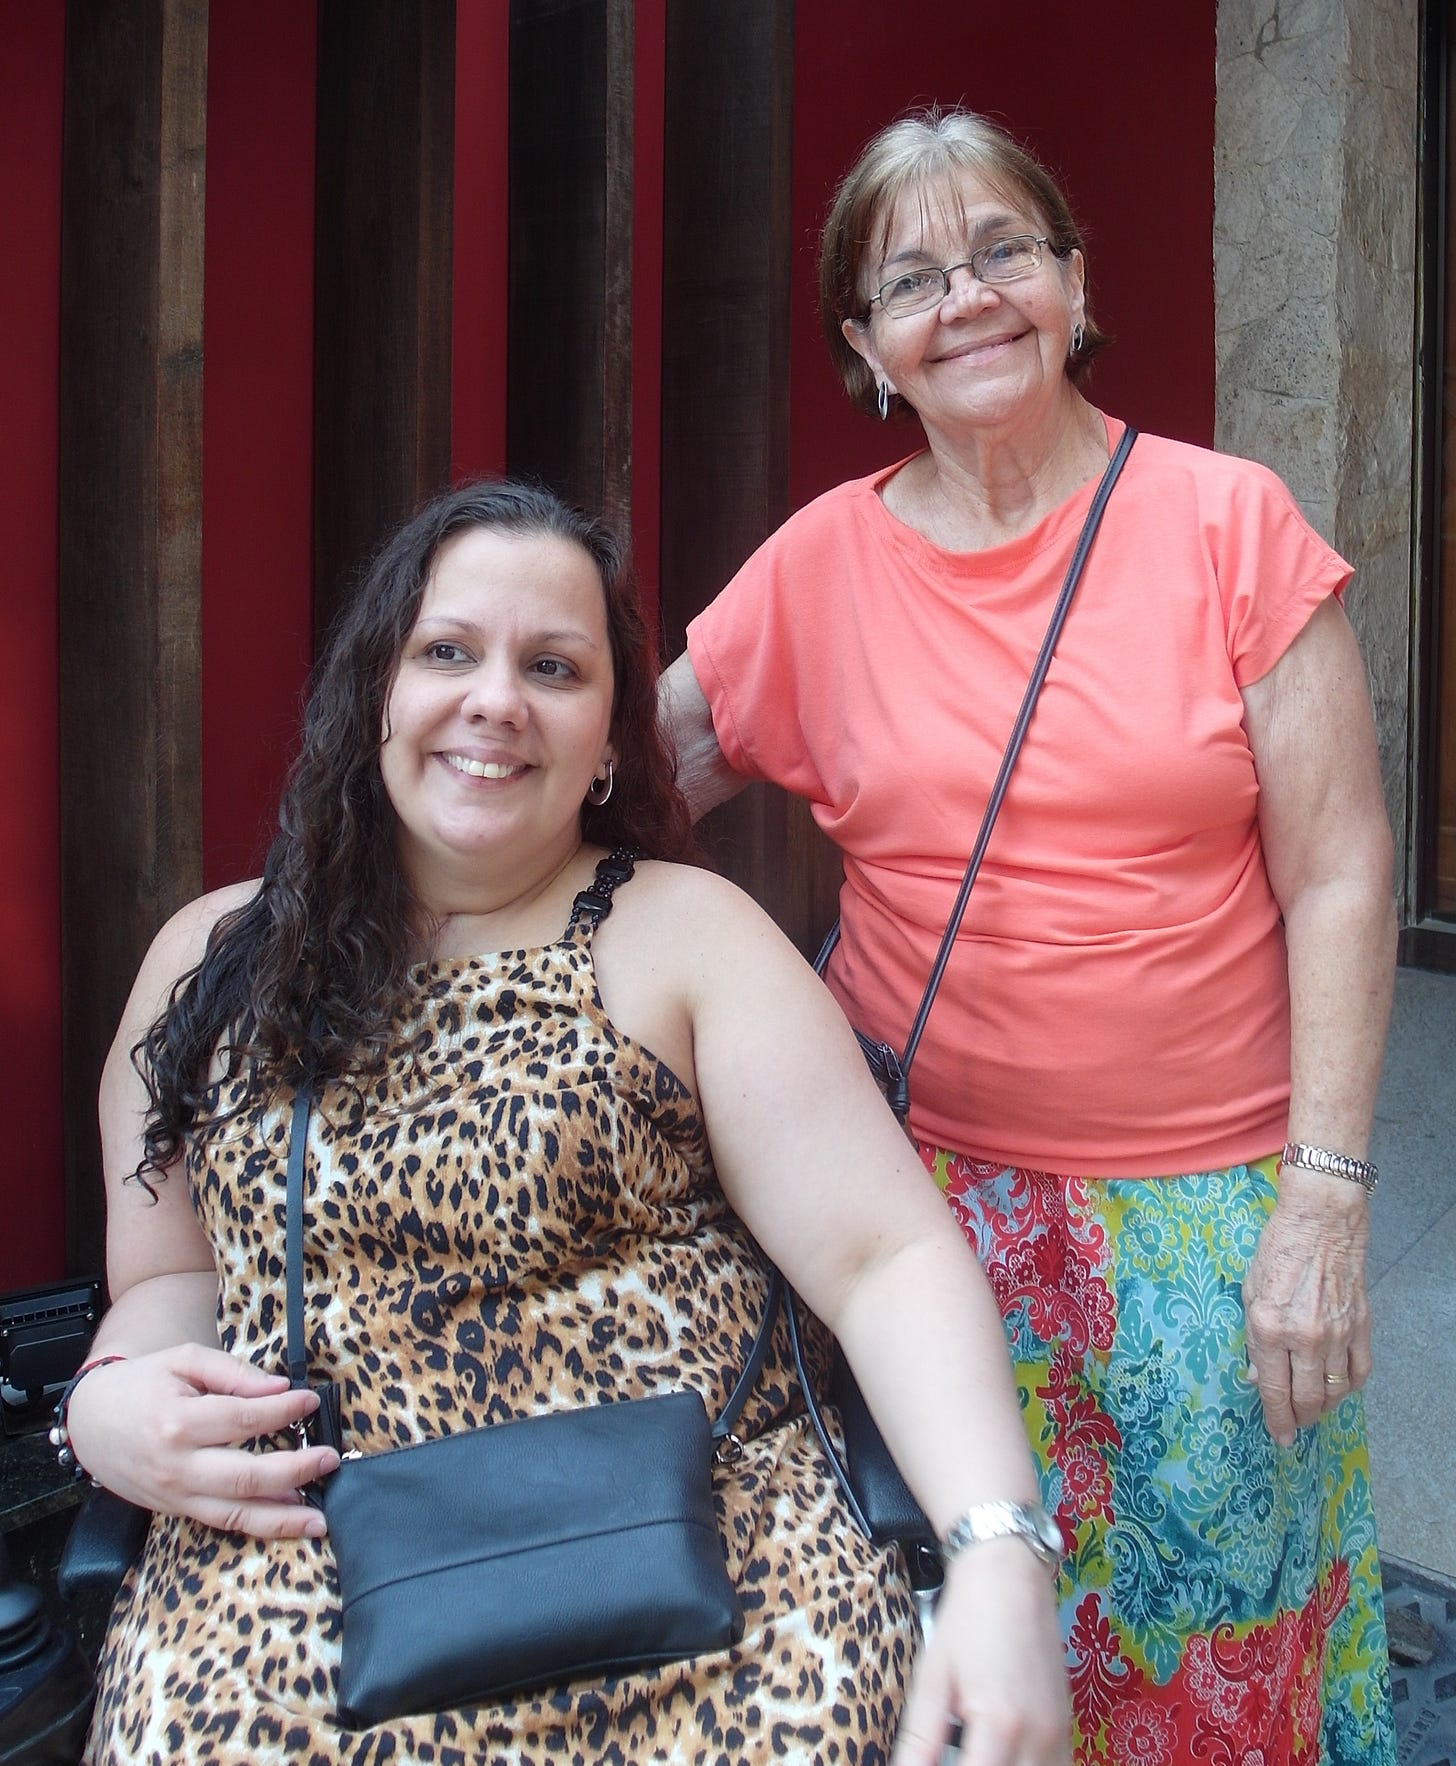 Sheila smiles with a glance off camera, dark hair curling down, sitting in a wheelchair with a leopard-print dress. Raylda to her right is an older woman smiling towards the camera and rose coloured top and colourful print dress.